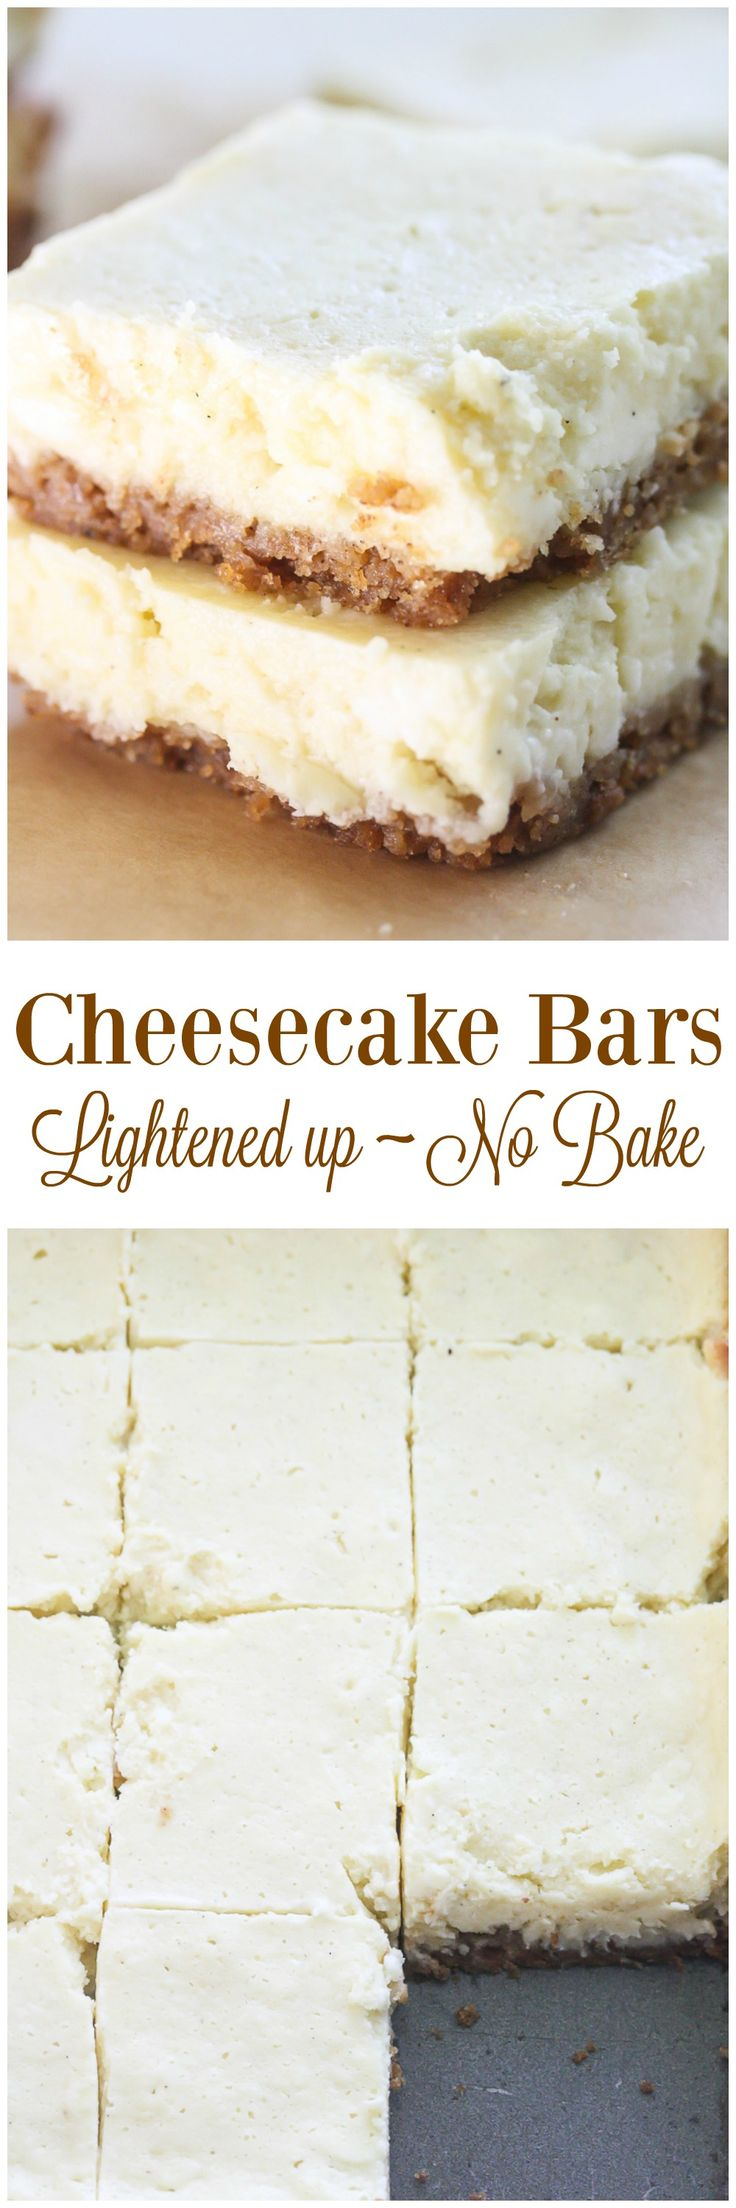 Lightened Up No Bake Cheesecake Bars from Lauren Kelly Nutrition